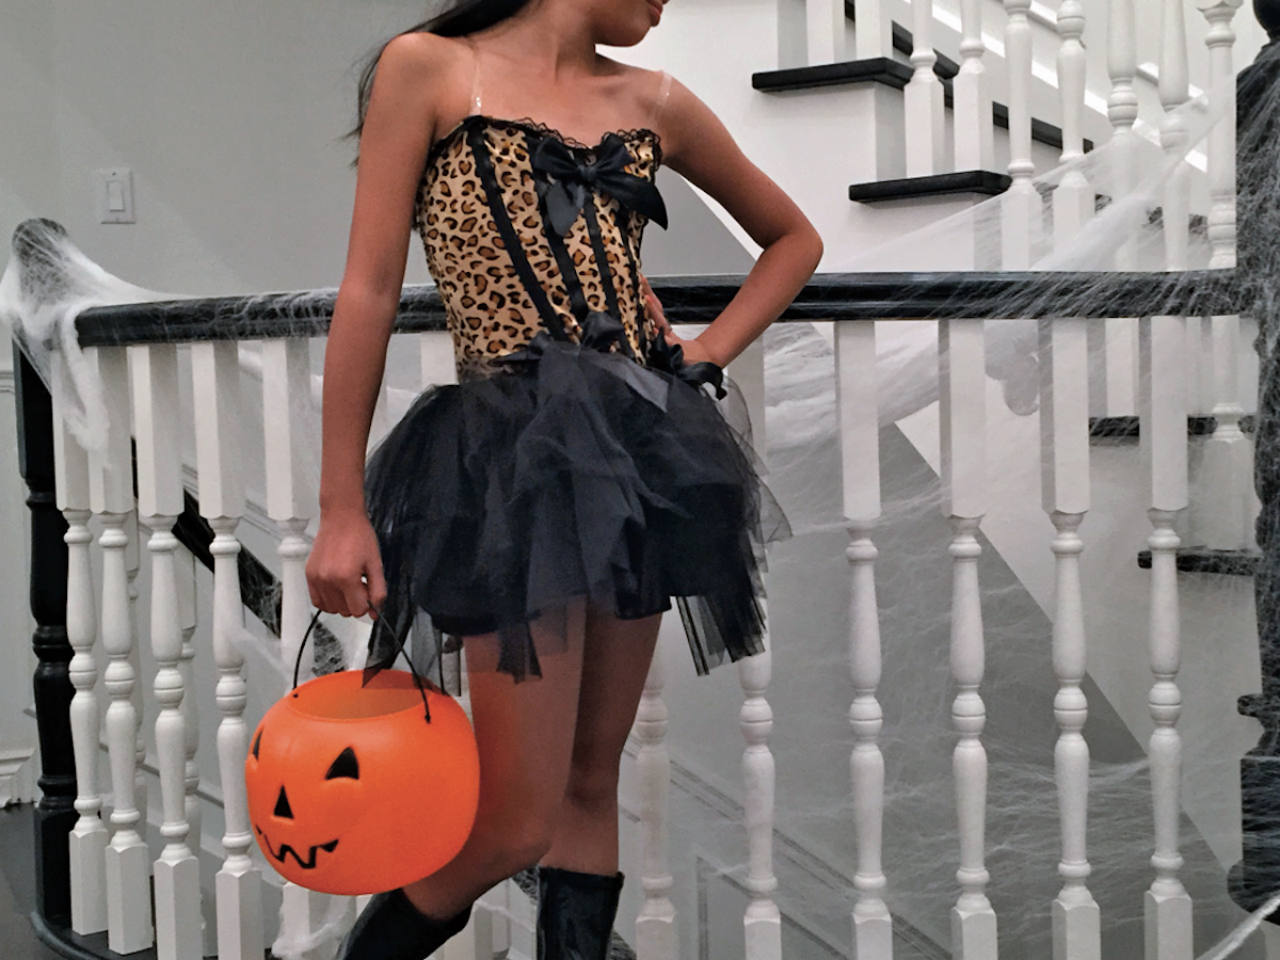 A girl dressed up in a leopard print dress holding a pumpkin treat bucket